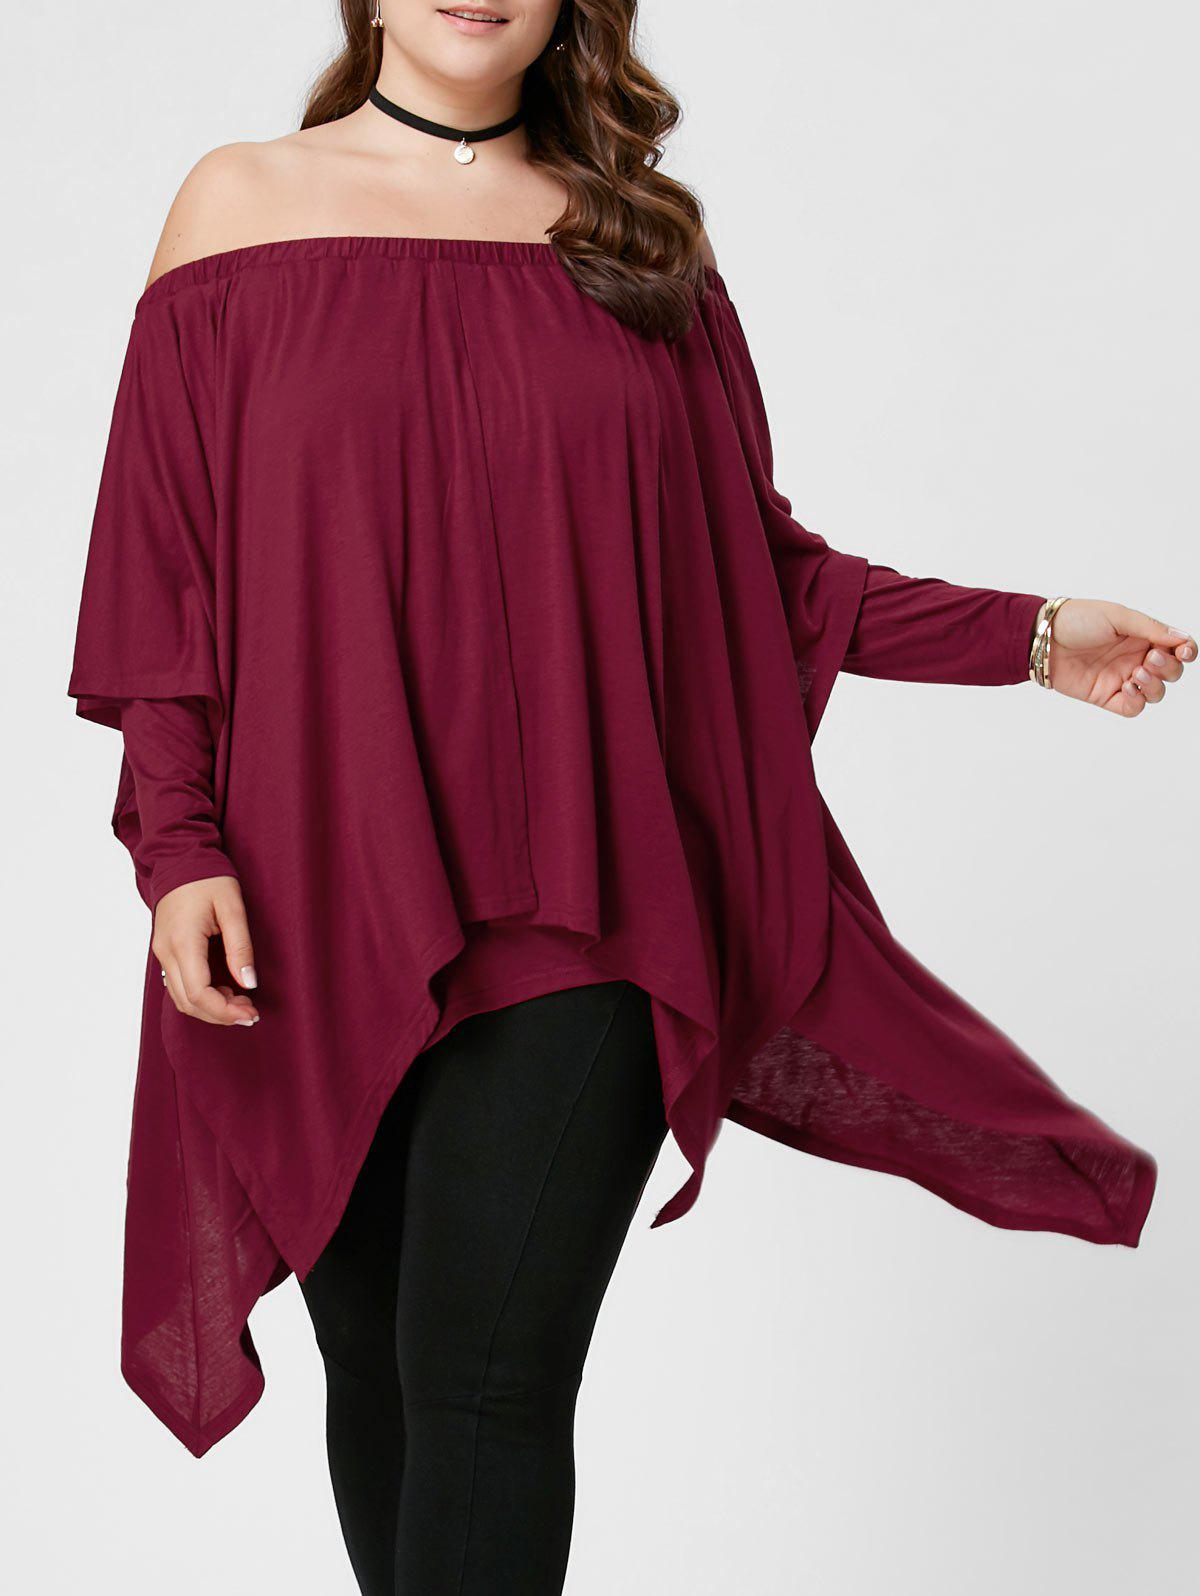 Plus Size Off The Shoulder Handkerchief TopWOMEN<br><br>Size: XL; Color: PEARL AMARANTH; Material: Polyester,Spandex; Shirt Length: Regular; Sleeve Length: Full; Collar: Off The Shoulder; Style: Fashion; Season: Fall,Spring,Summer; Pattern Type: Solid; Weight: 0.5700kg; Package Contents: 1 x Top;